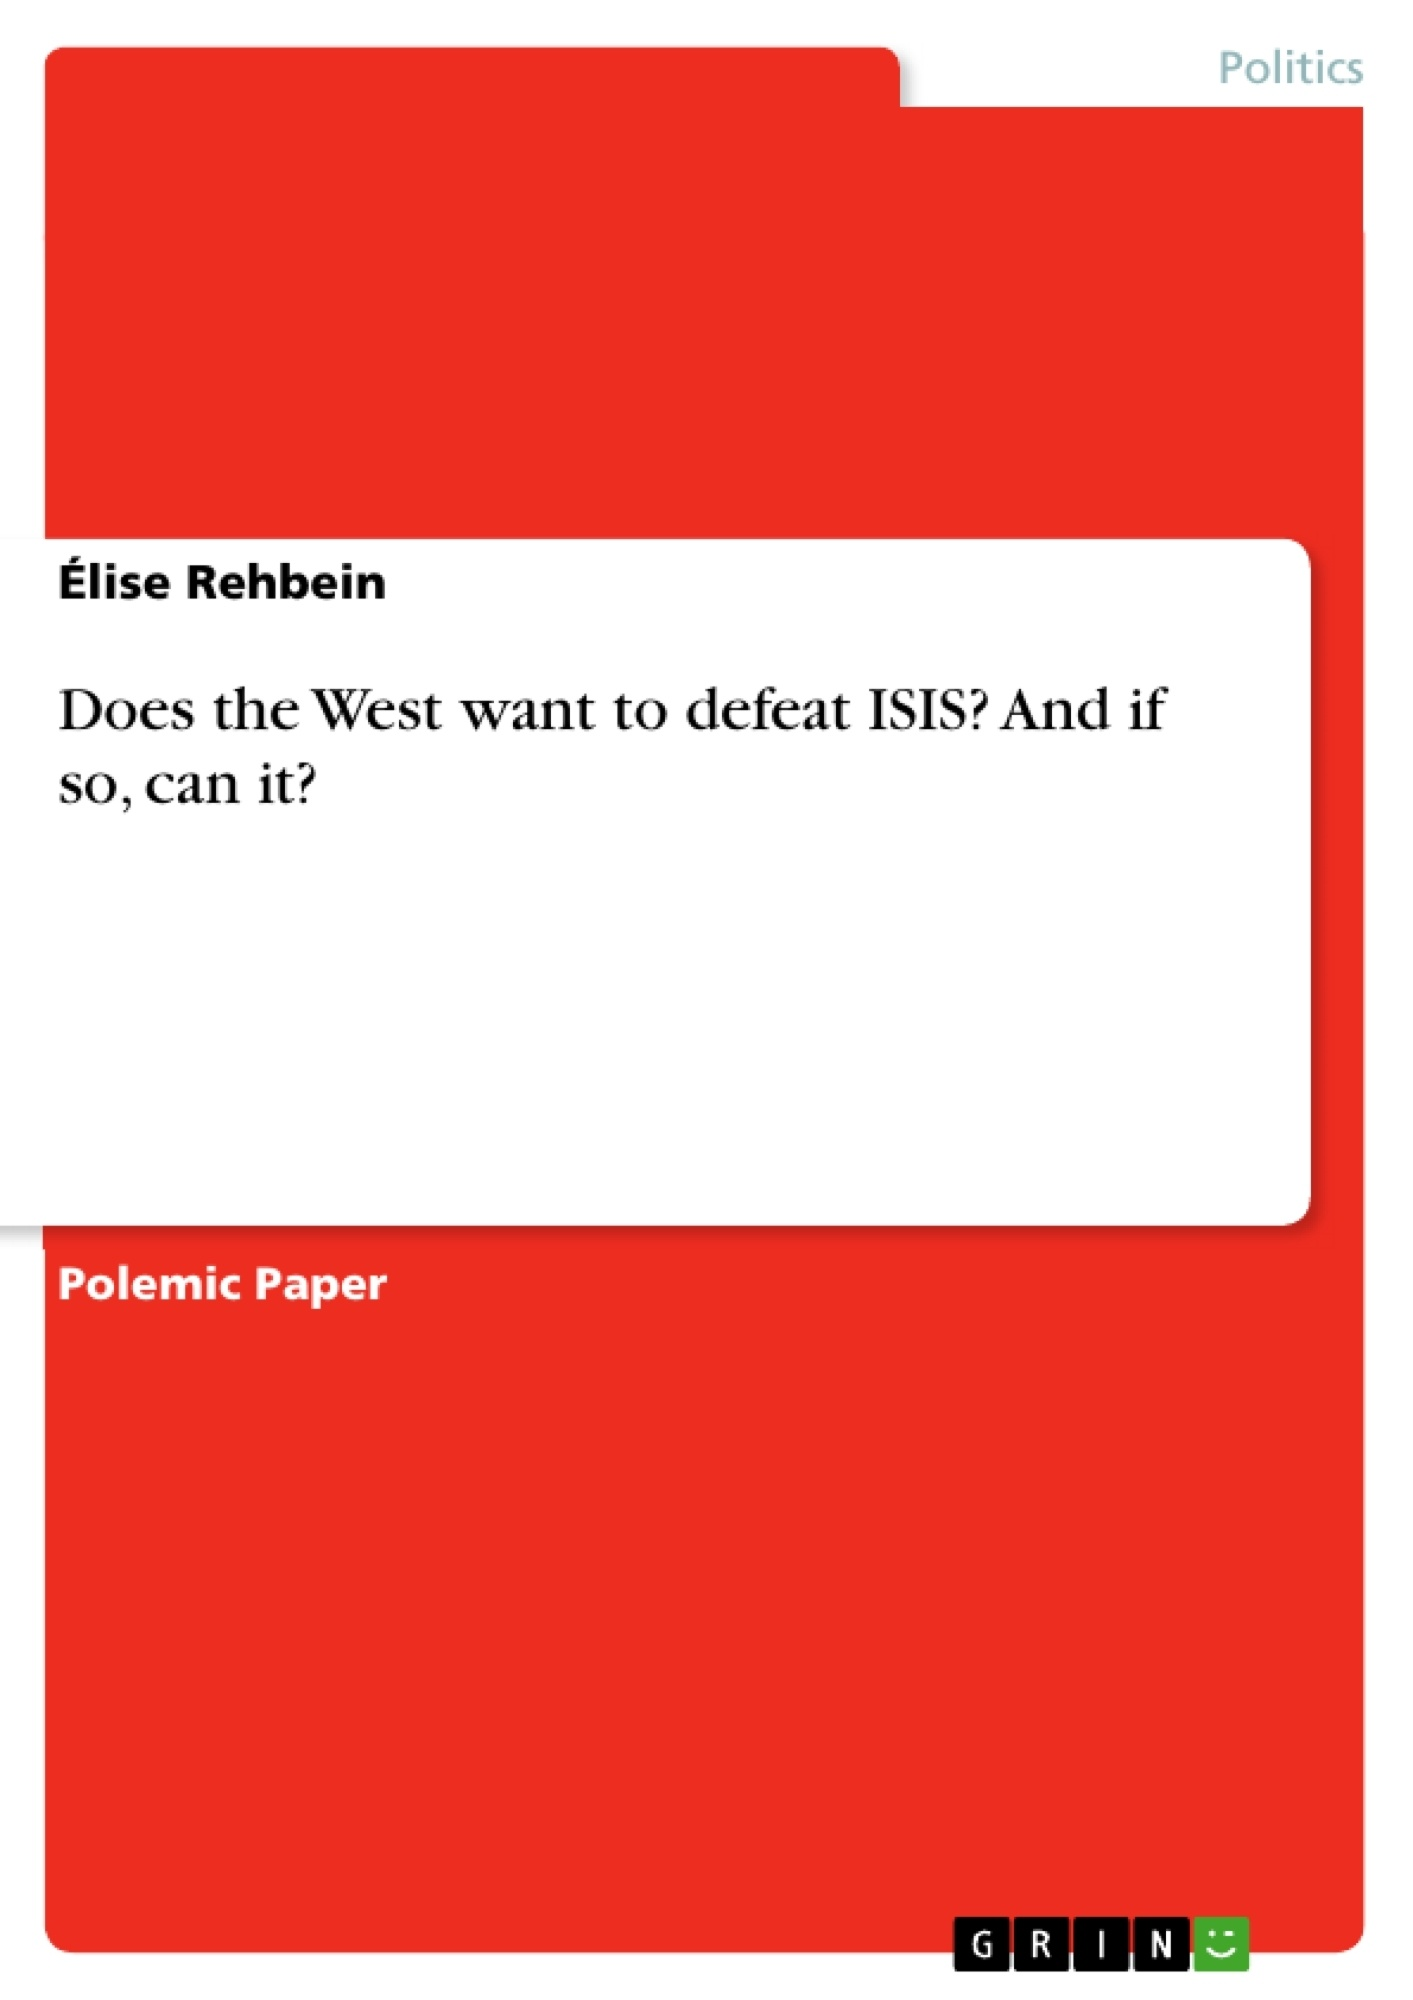 Title: Does the West want to defeat ISIS? And if so, can it?